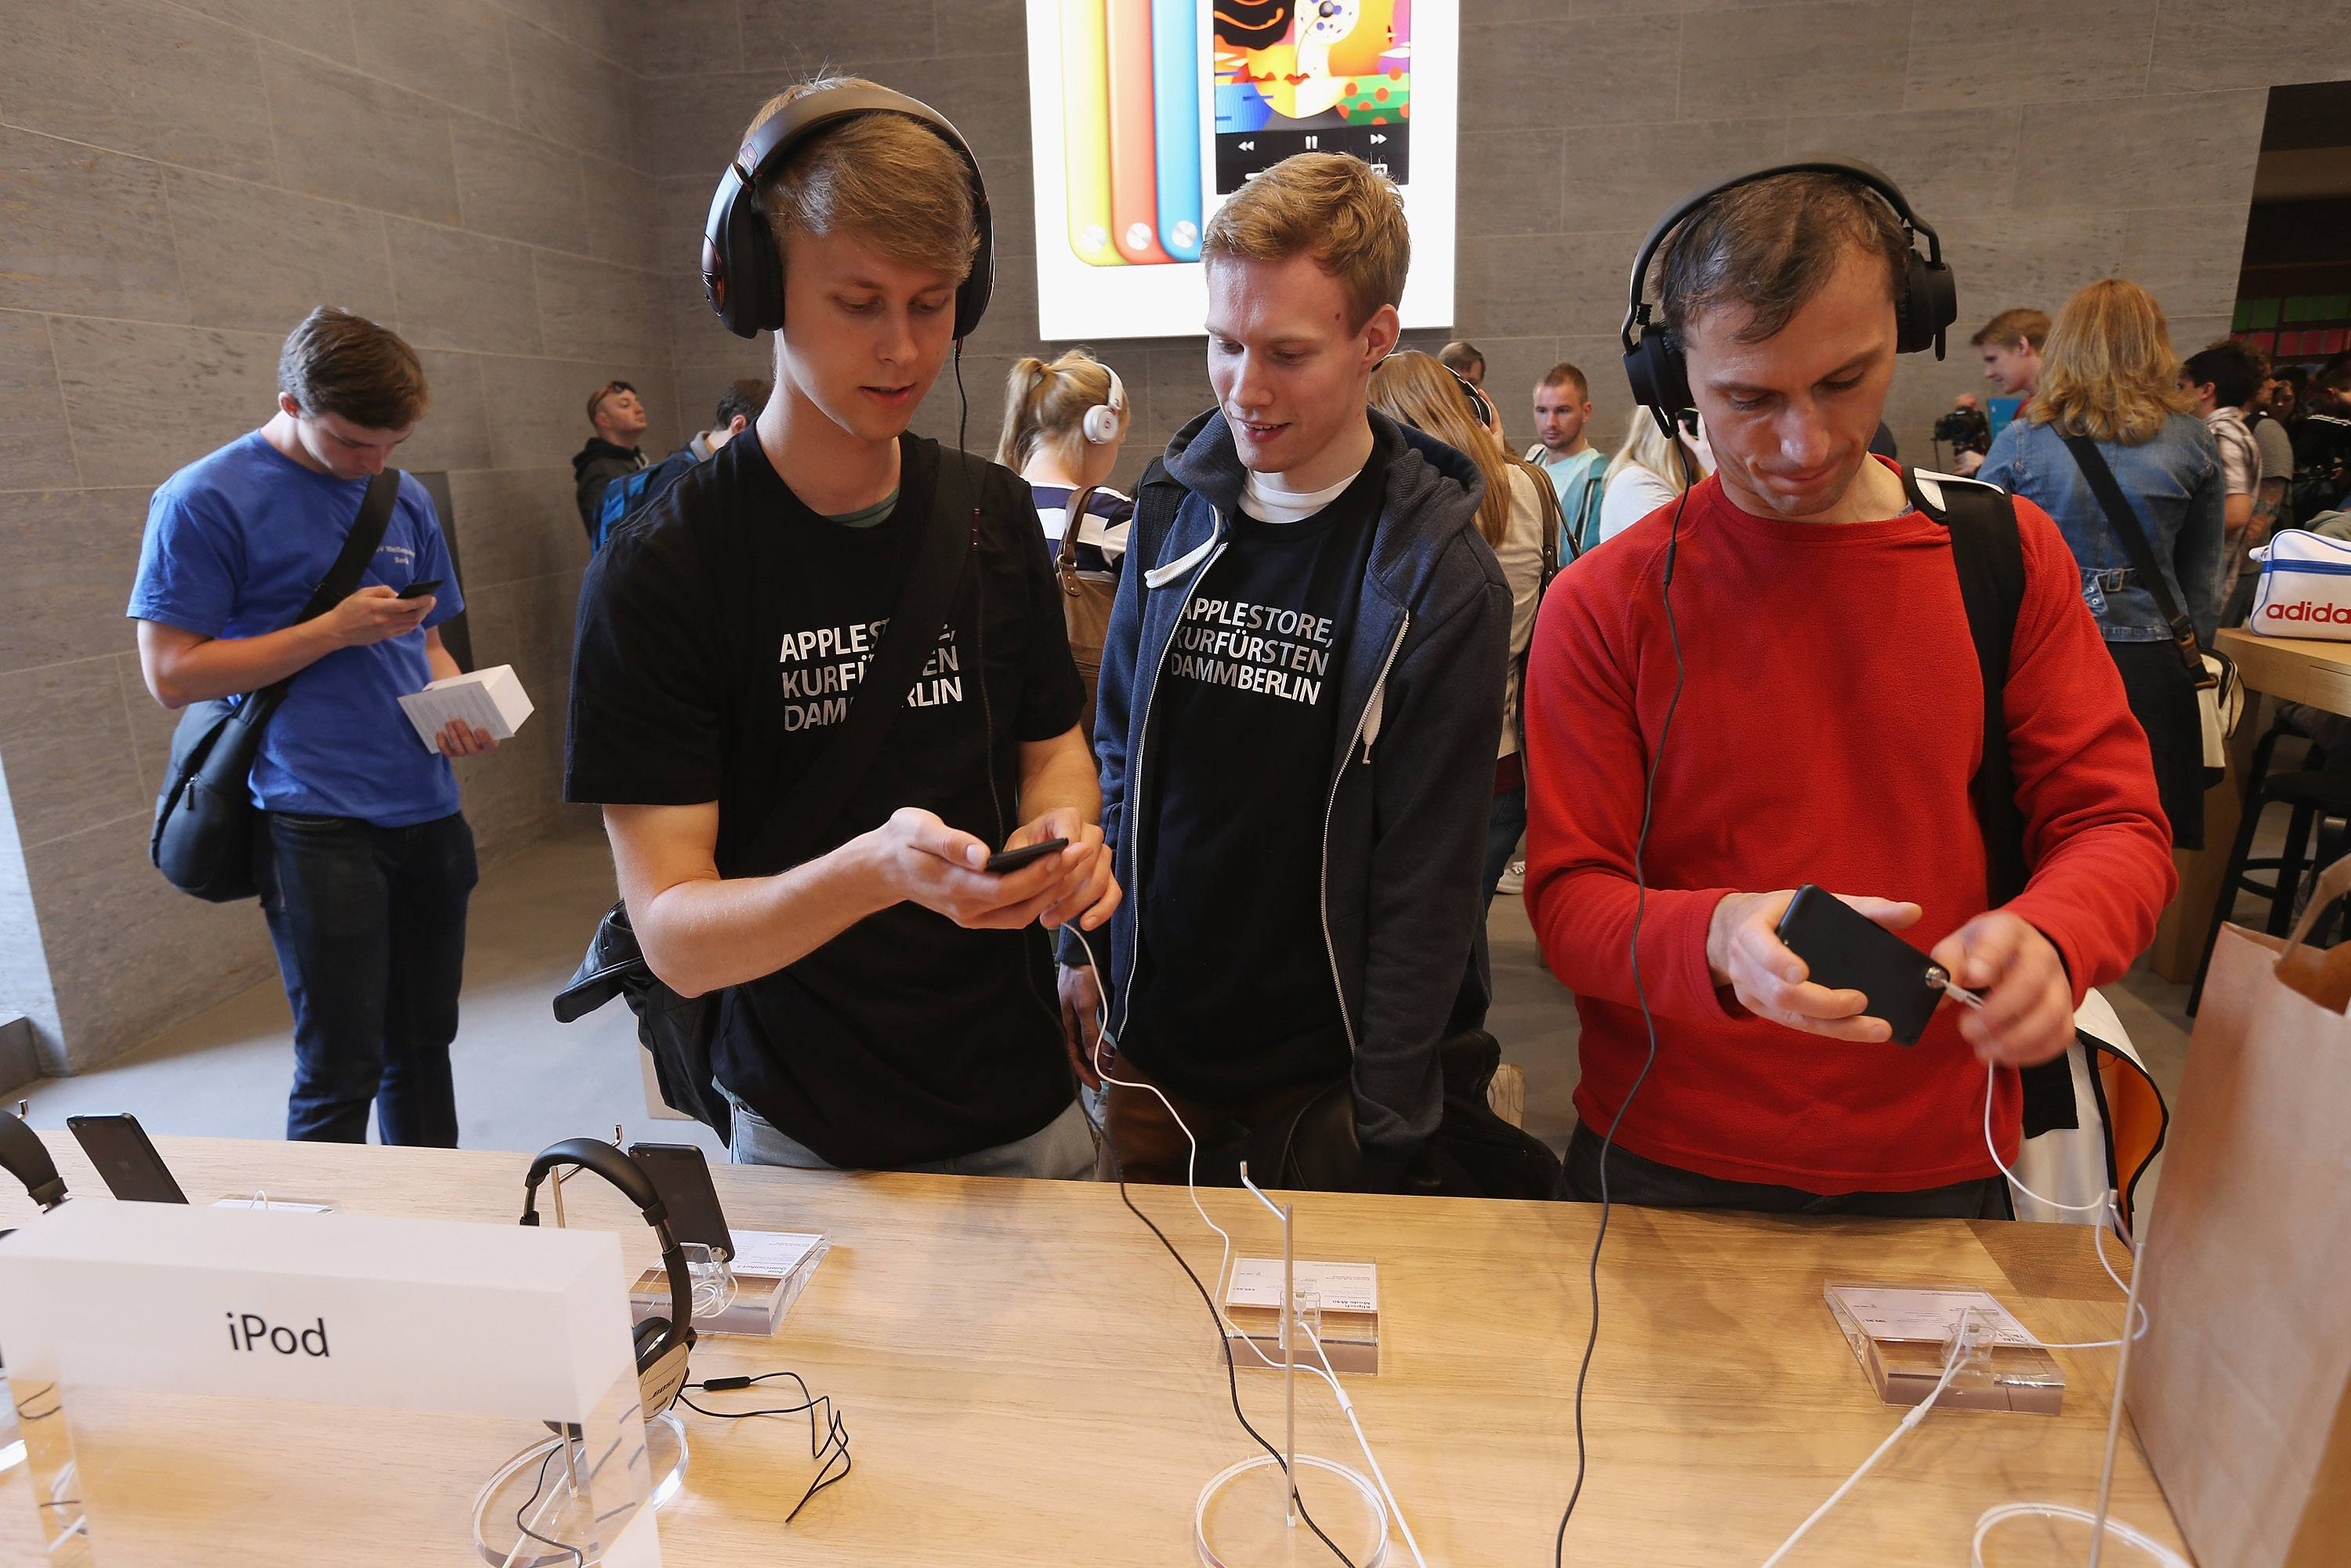 Visitors try out hifi headphones on Apple iPods at the new Apple Store